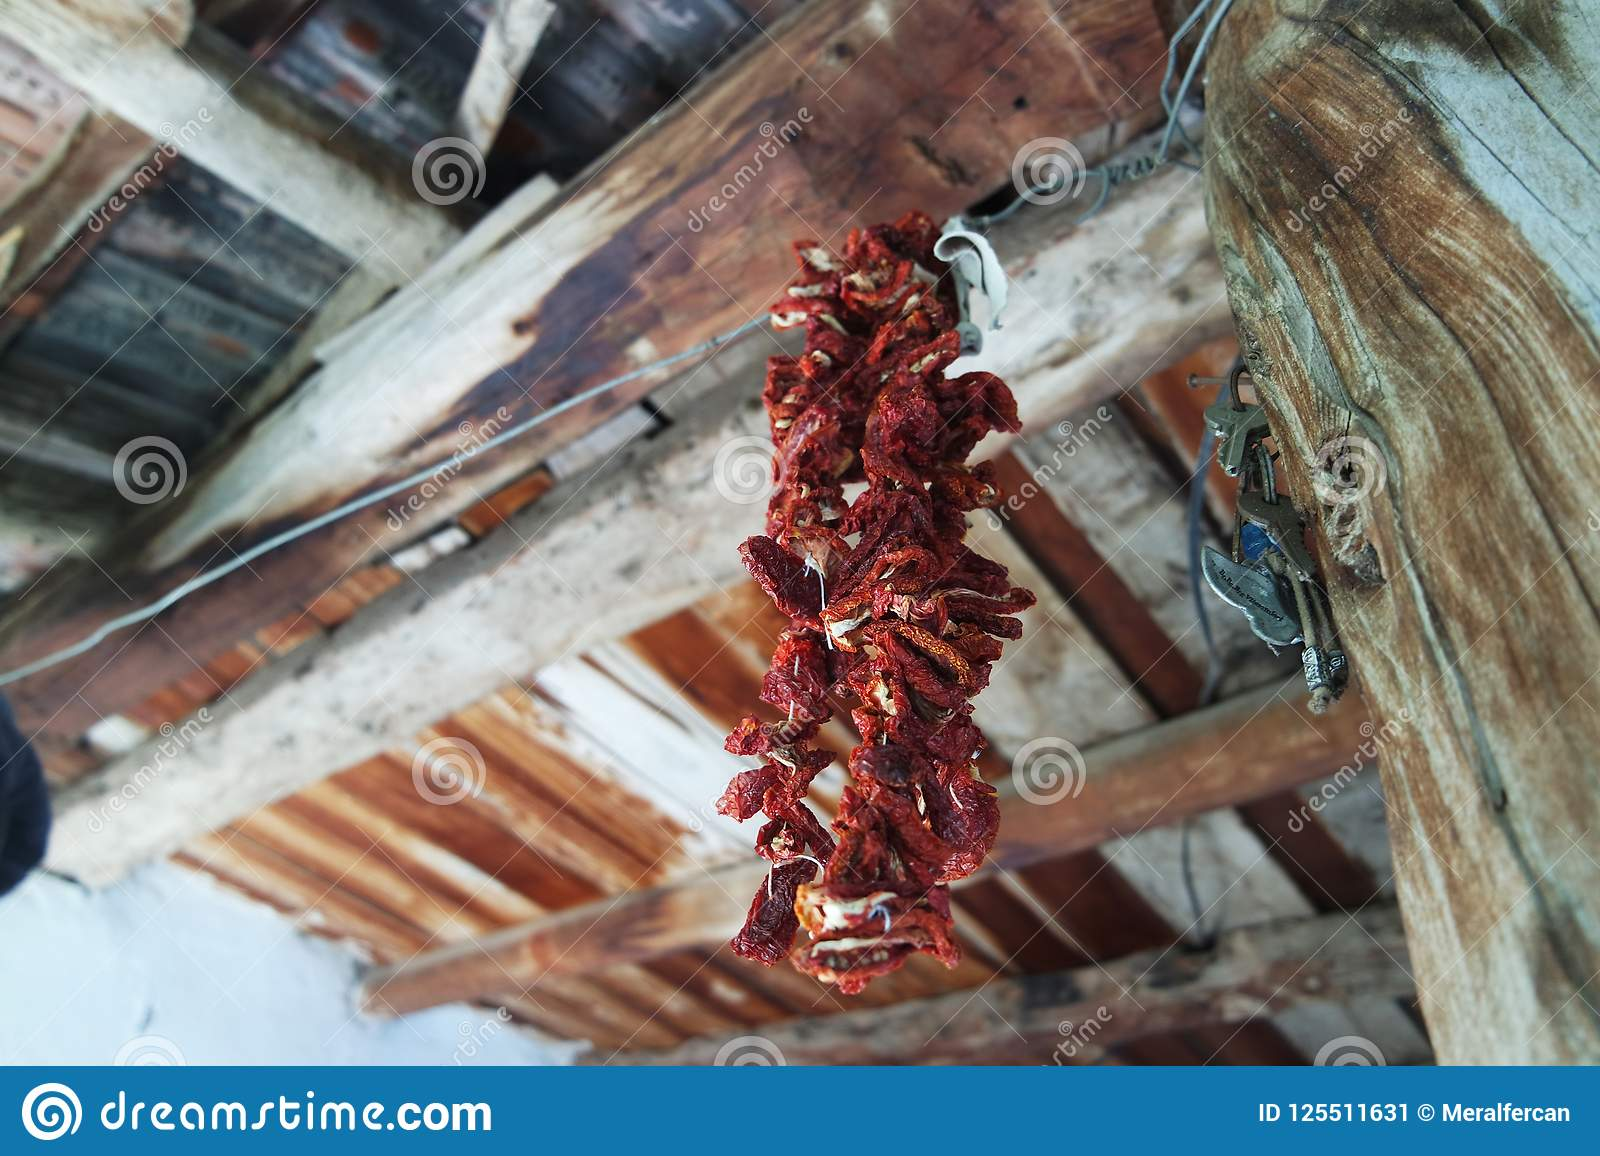 Dried peppers hanging on the ceiling.